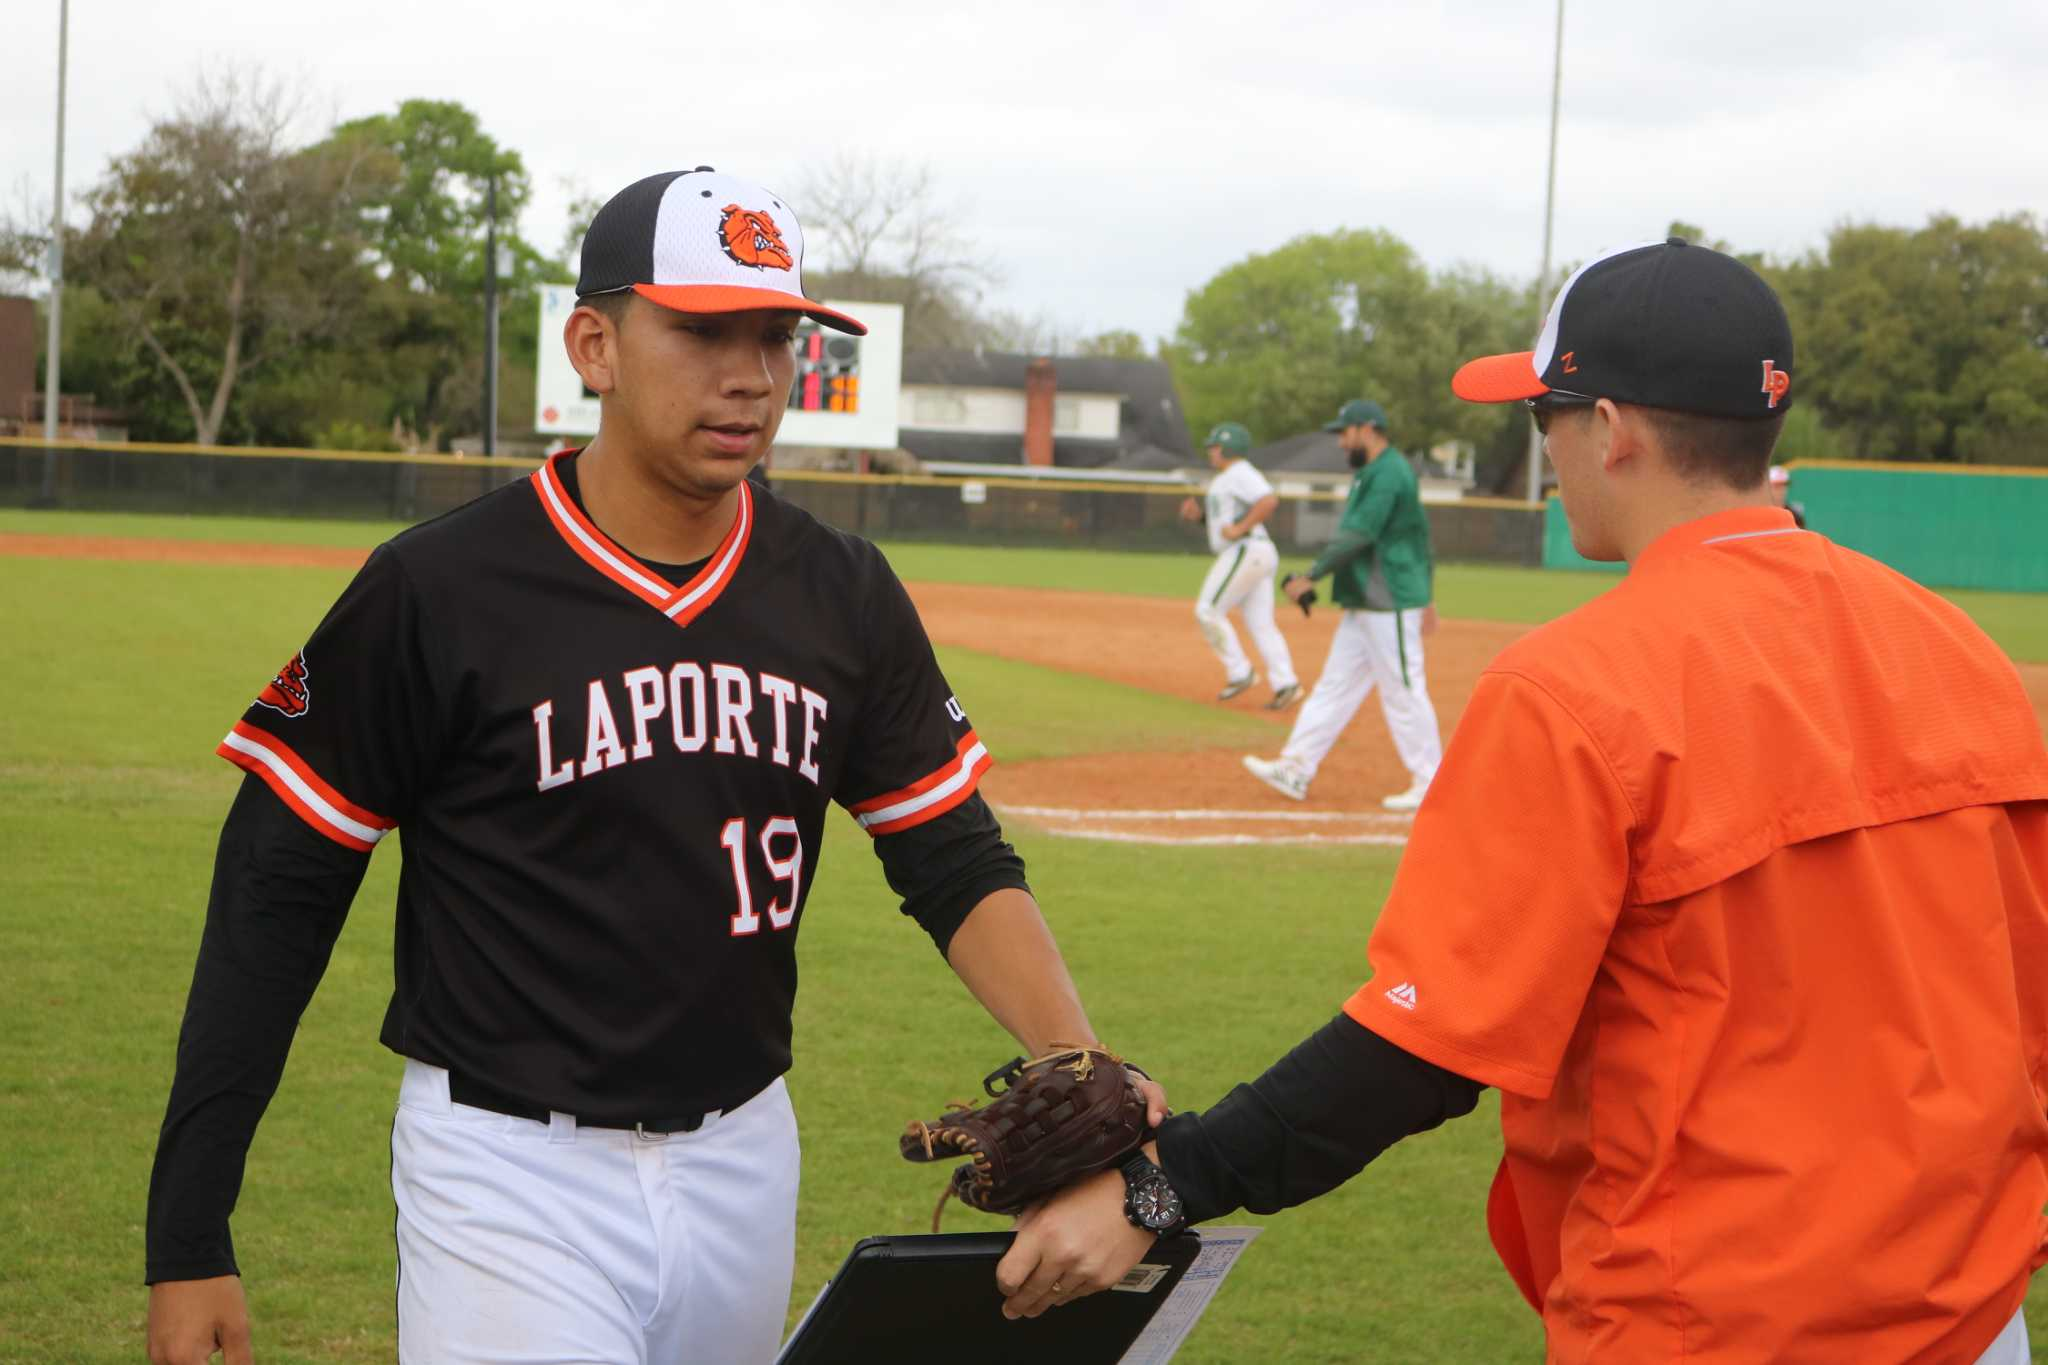 La porte pitcher tosses 3 hitter at pasadena san antonio for La porte tx breaking news